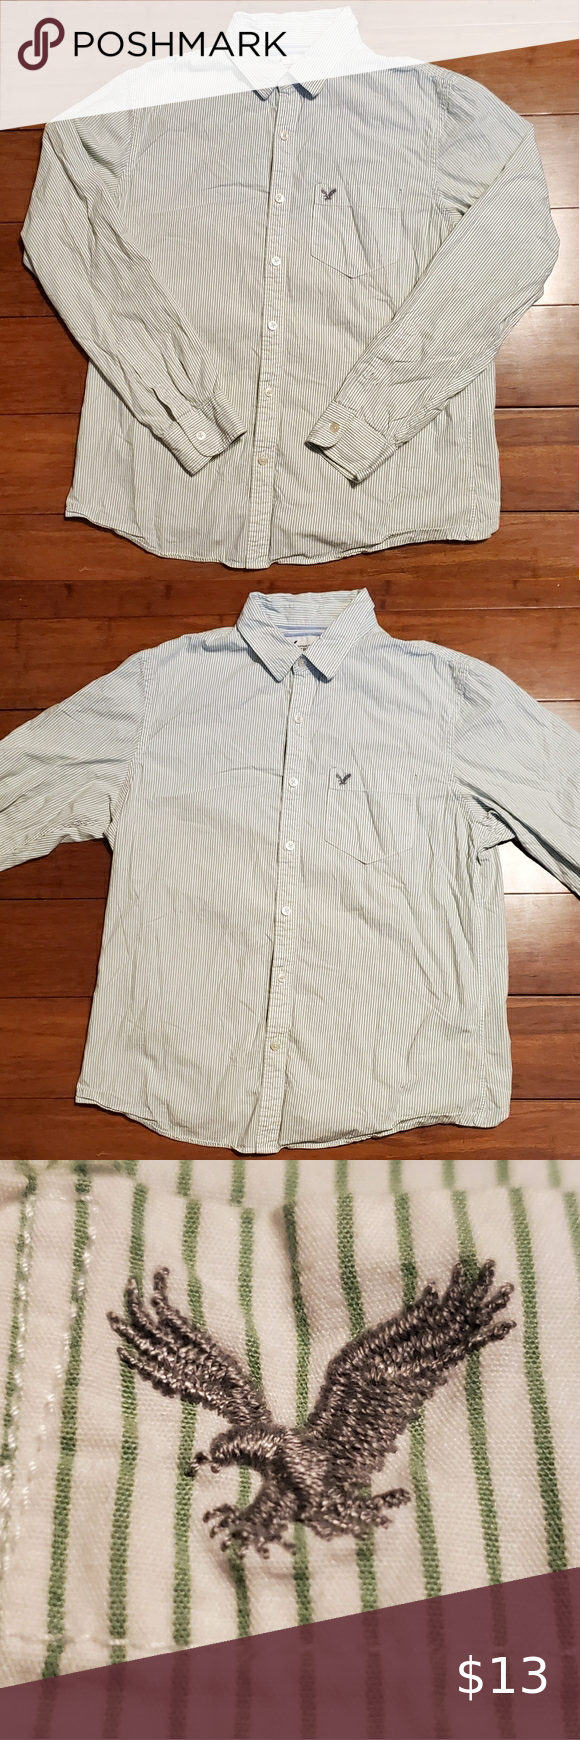 American Eagle Men S Dress Shirt Used Like New No Stains Or Tears Green And White And Mens Size L Great Con Mens Shirt Dress American Shirts Running Clothes [ 1740 x 580 Pixel ]